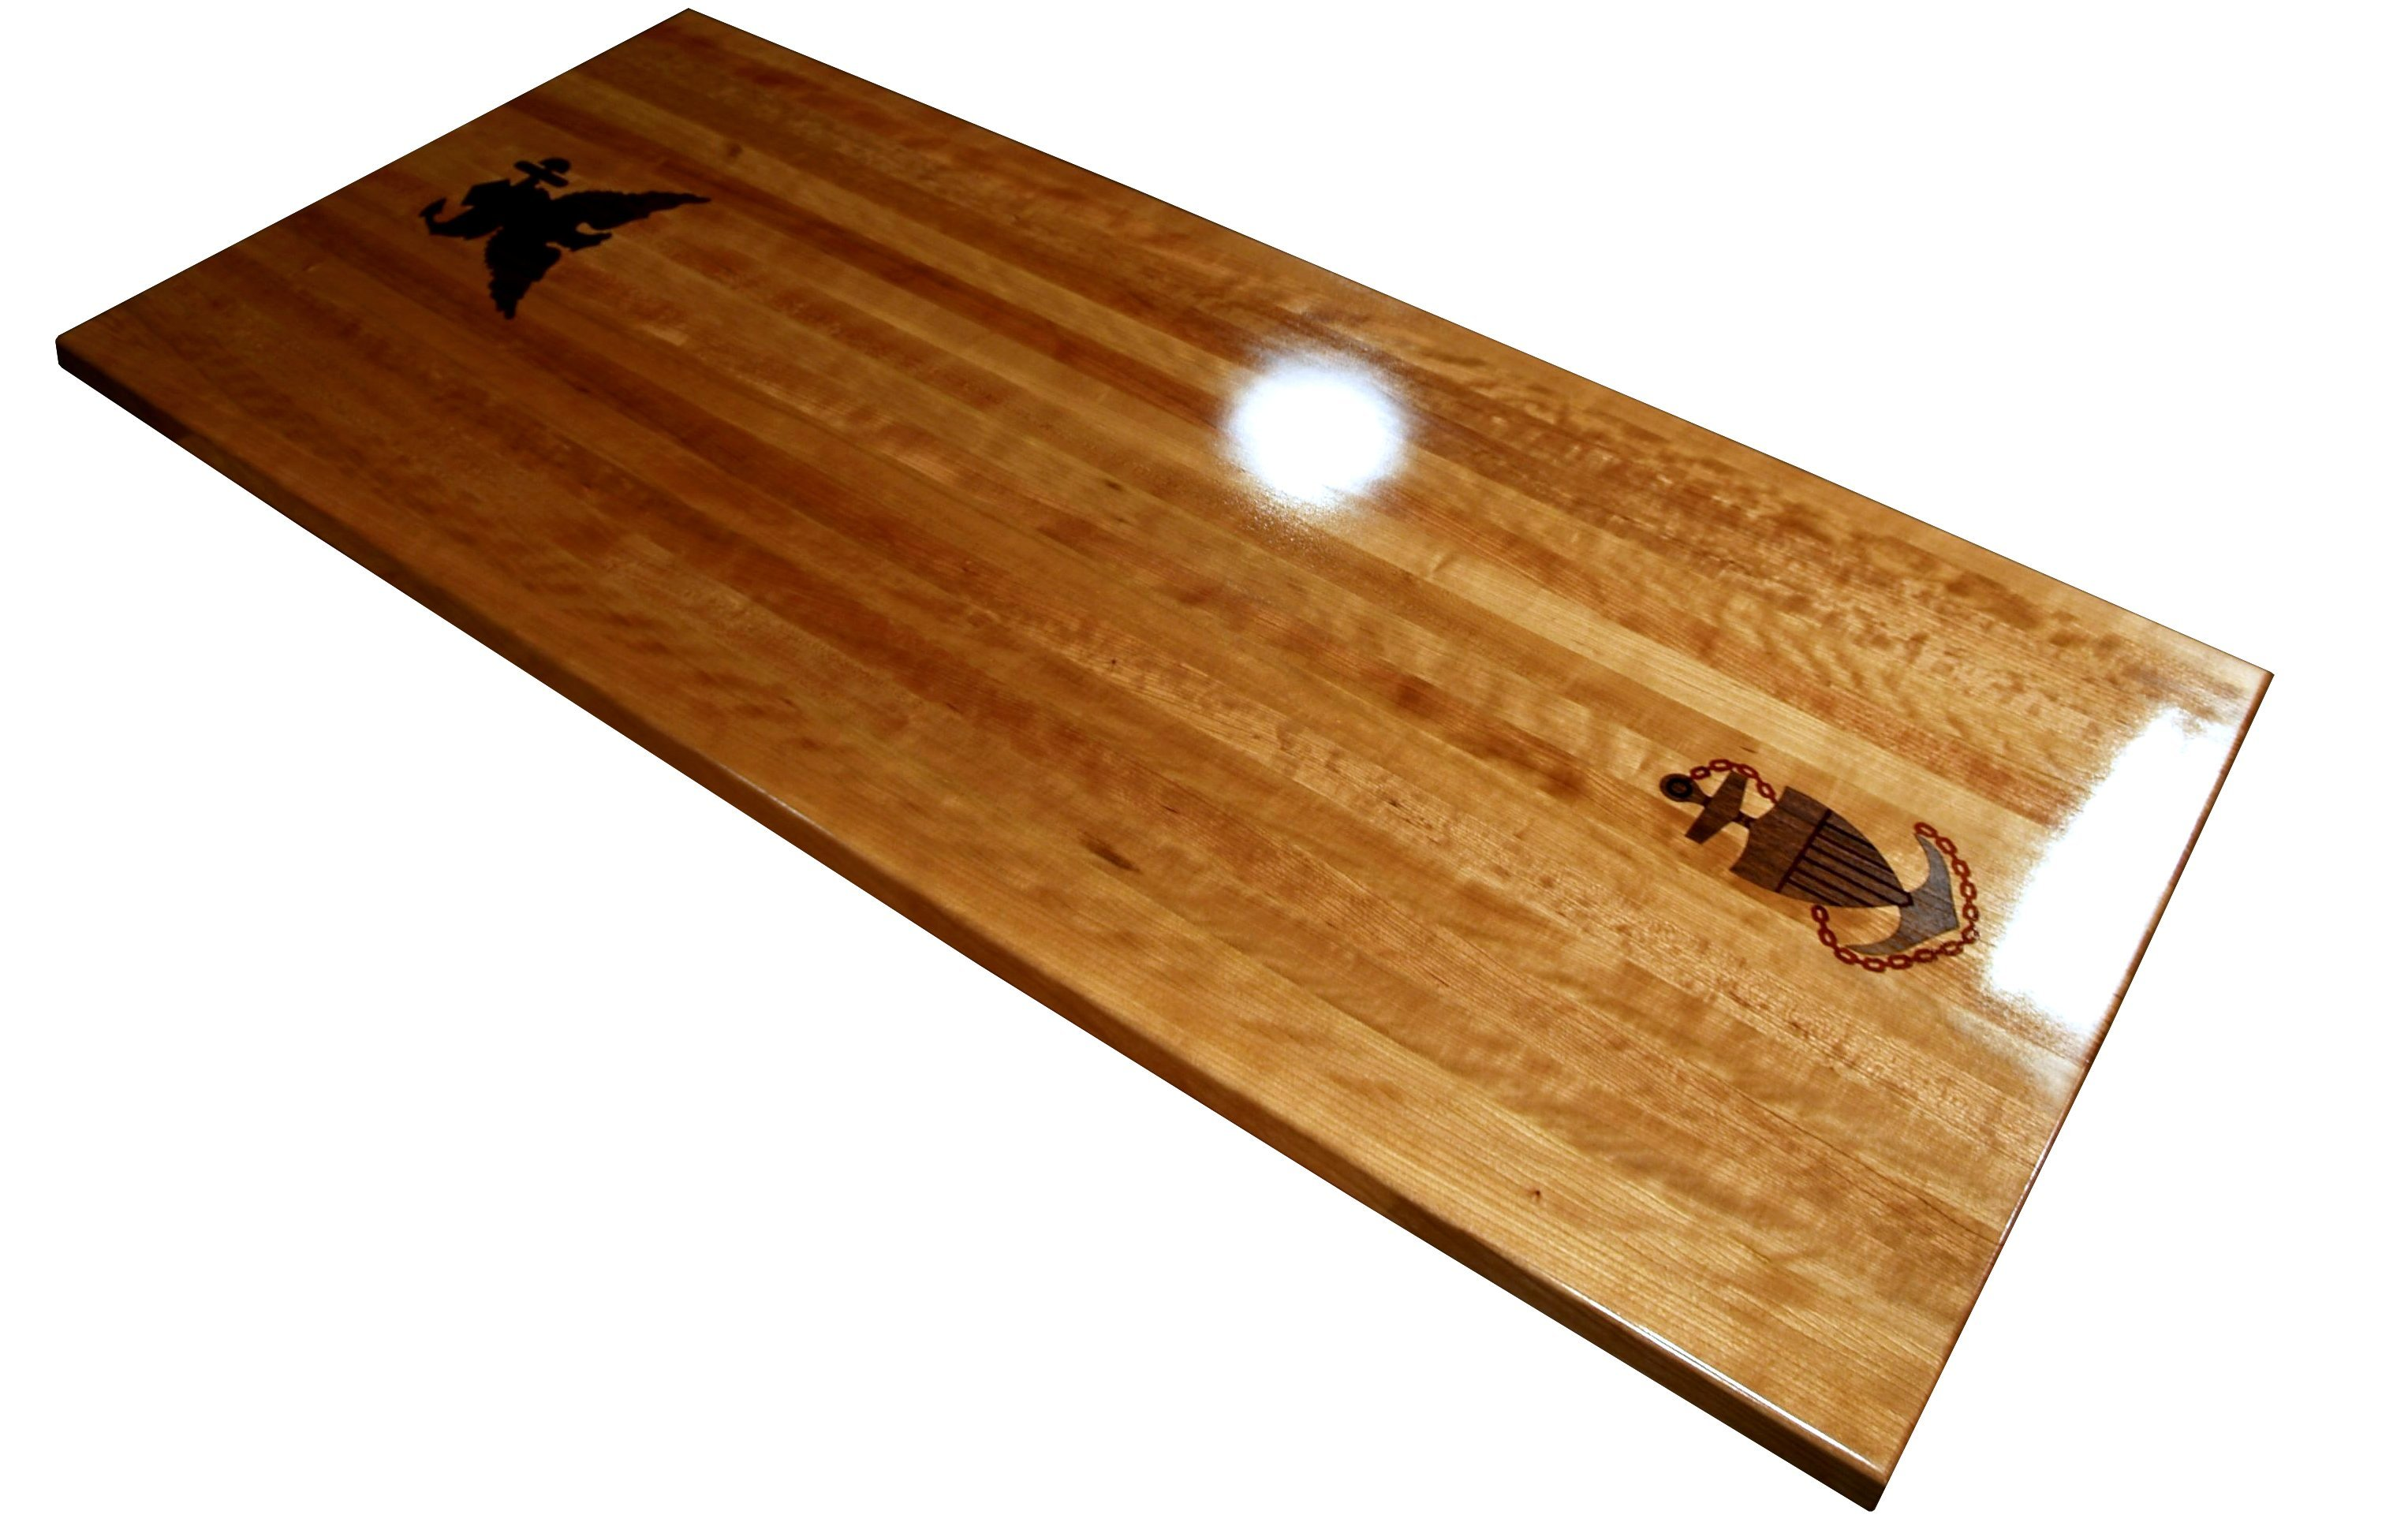 Exceptional Custom Walnut Inlay With Dyed Resin Set Into An Edge Grain Cherry Table Top.